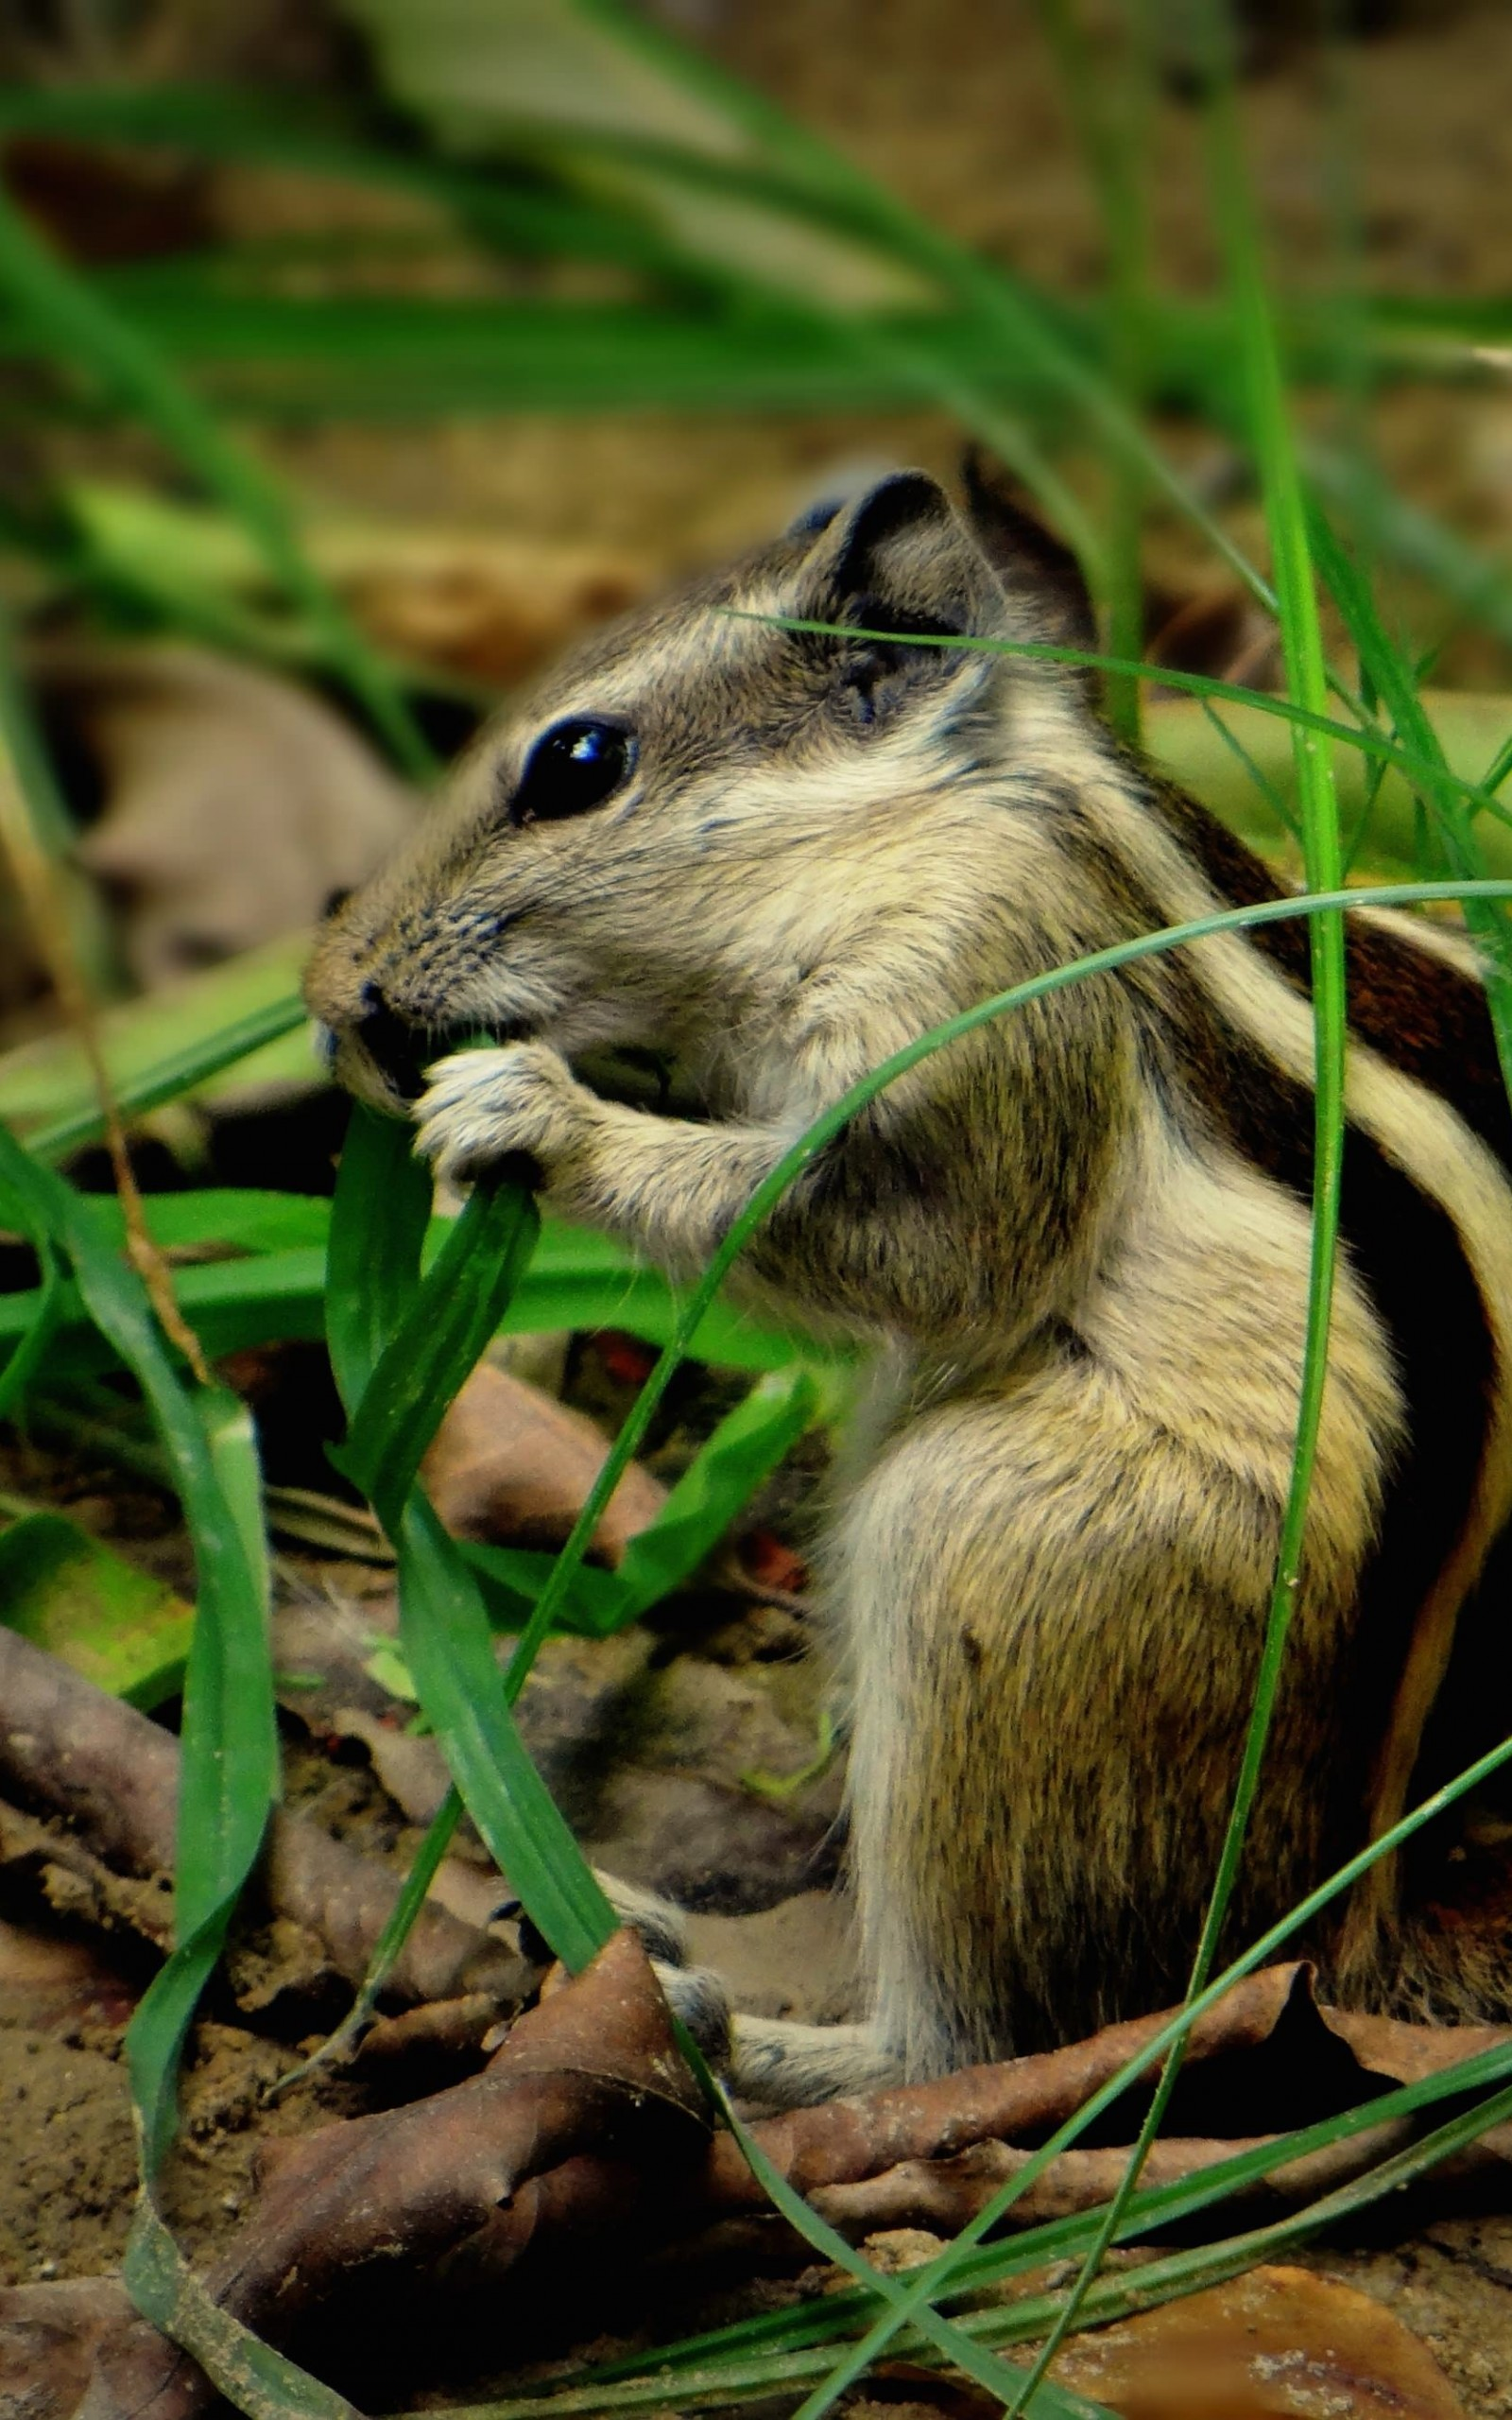 Chipmunk In The Grass Wallpaper for Amazon Kindle Fire HDX 8.9